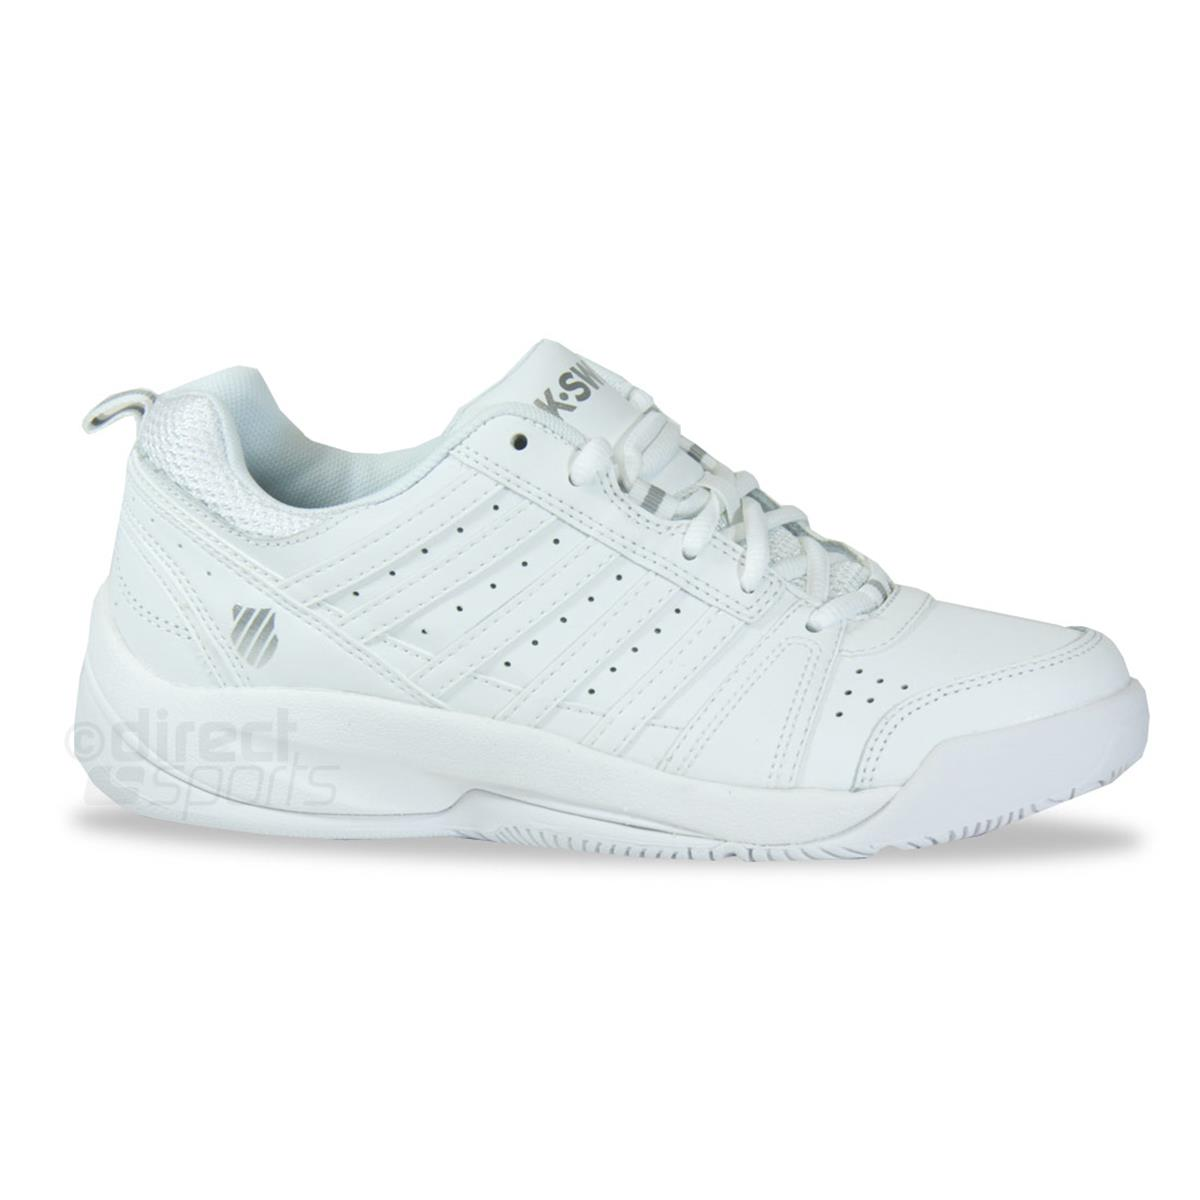 How To Clean Under Armour Tennis Shoes